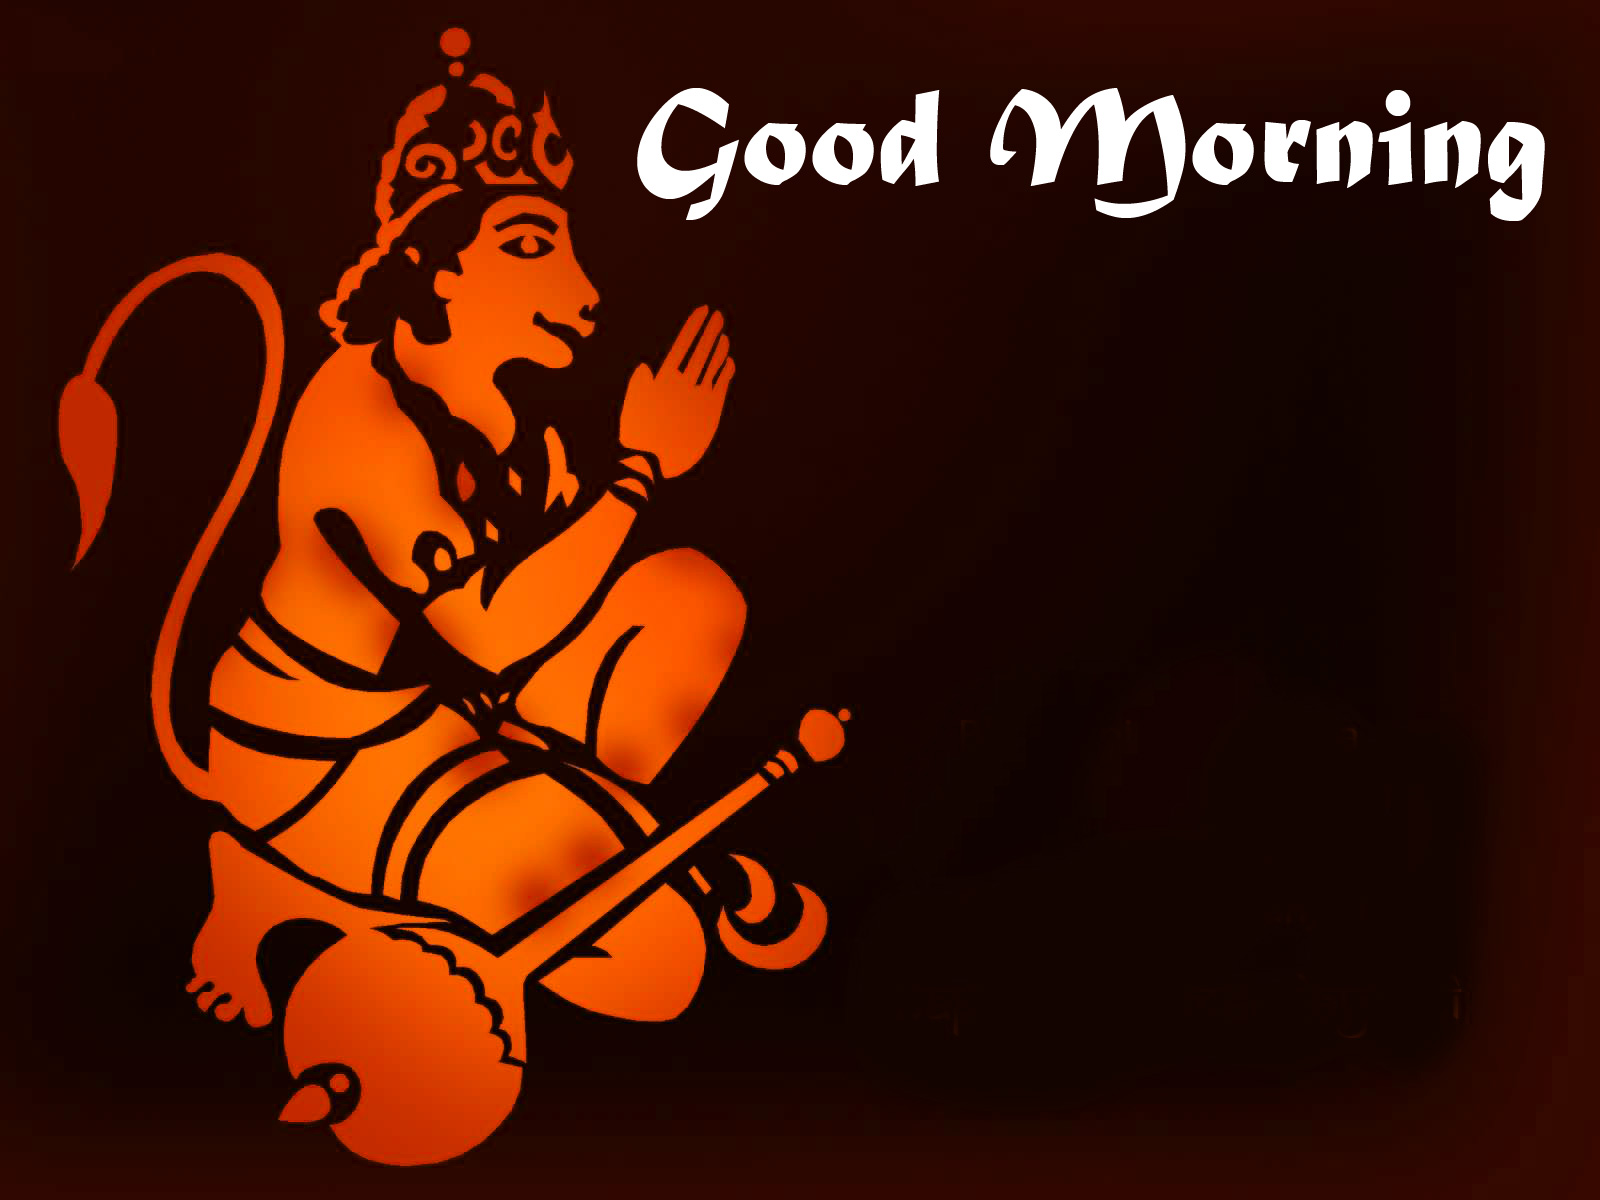 god images hanuman good Morning Images Free